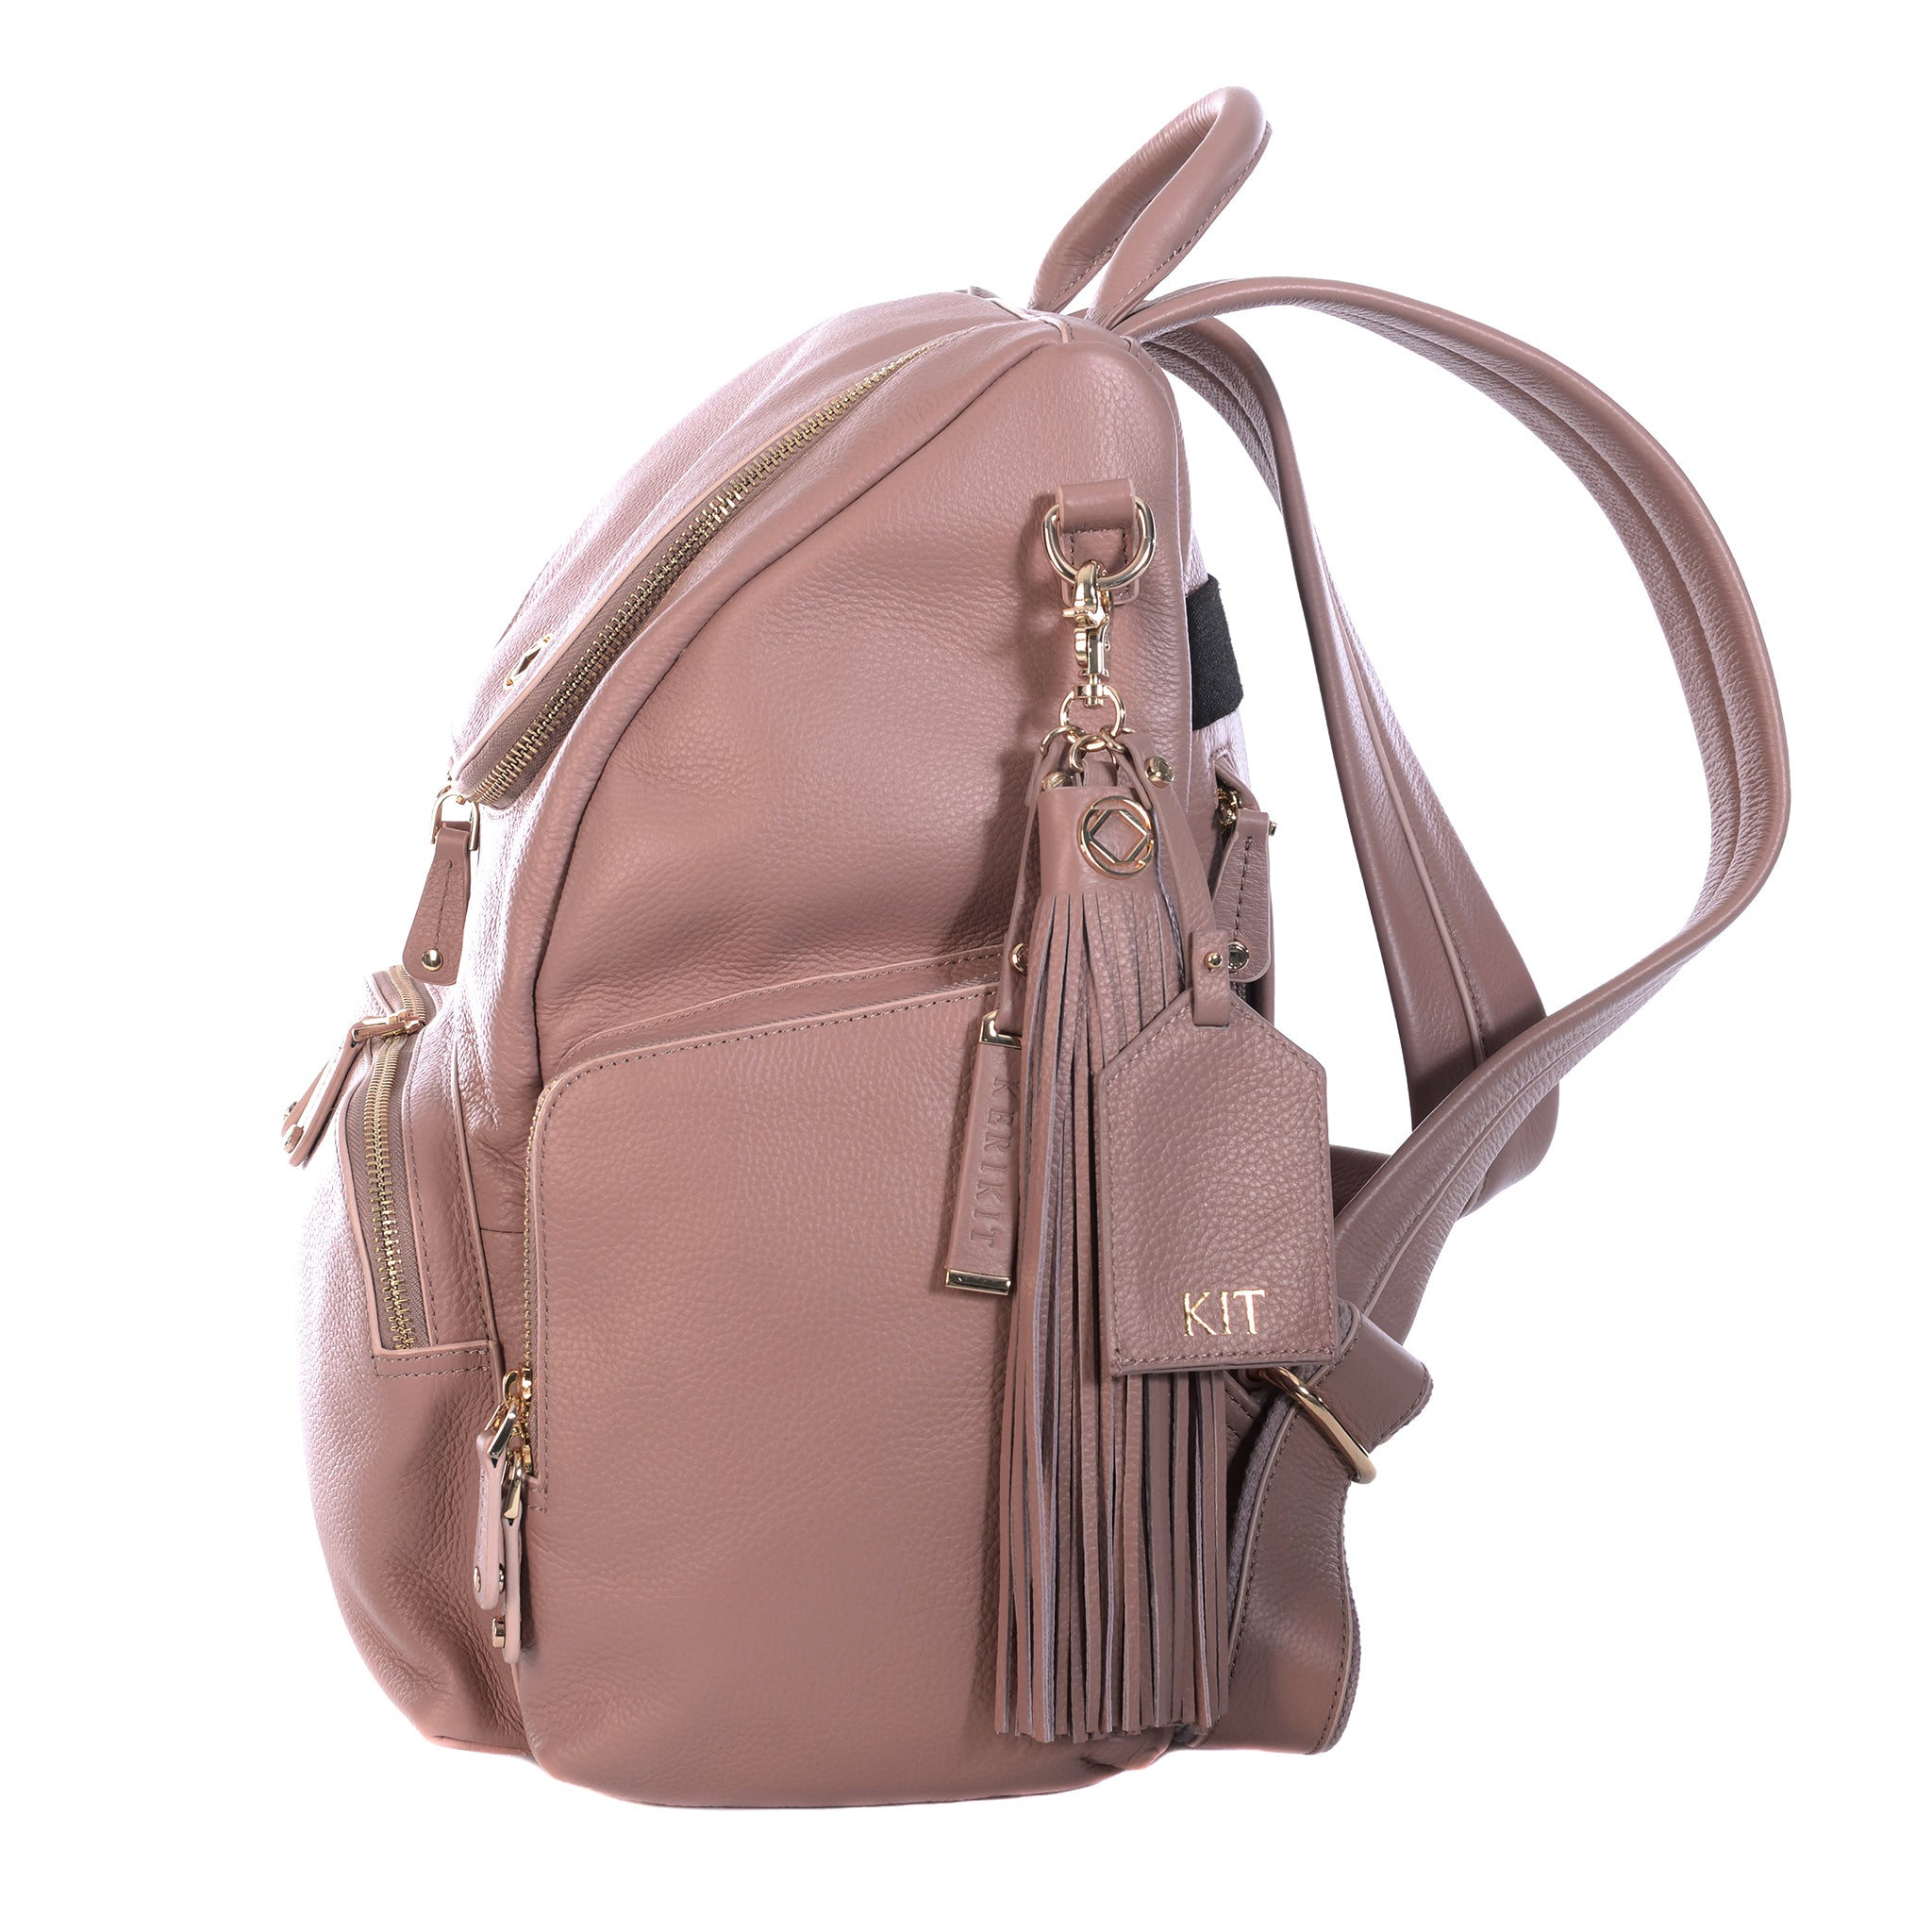 Amber Antique Rose Leather Backpack side view with personalised keychain